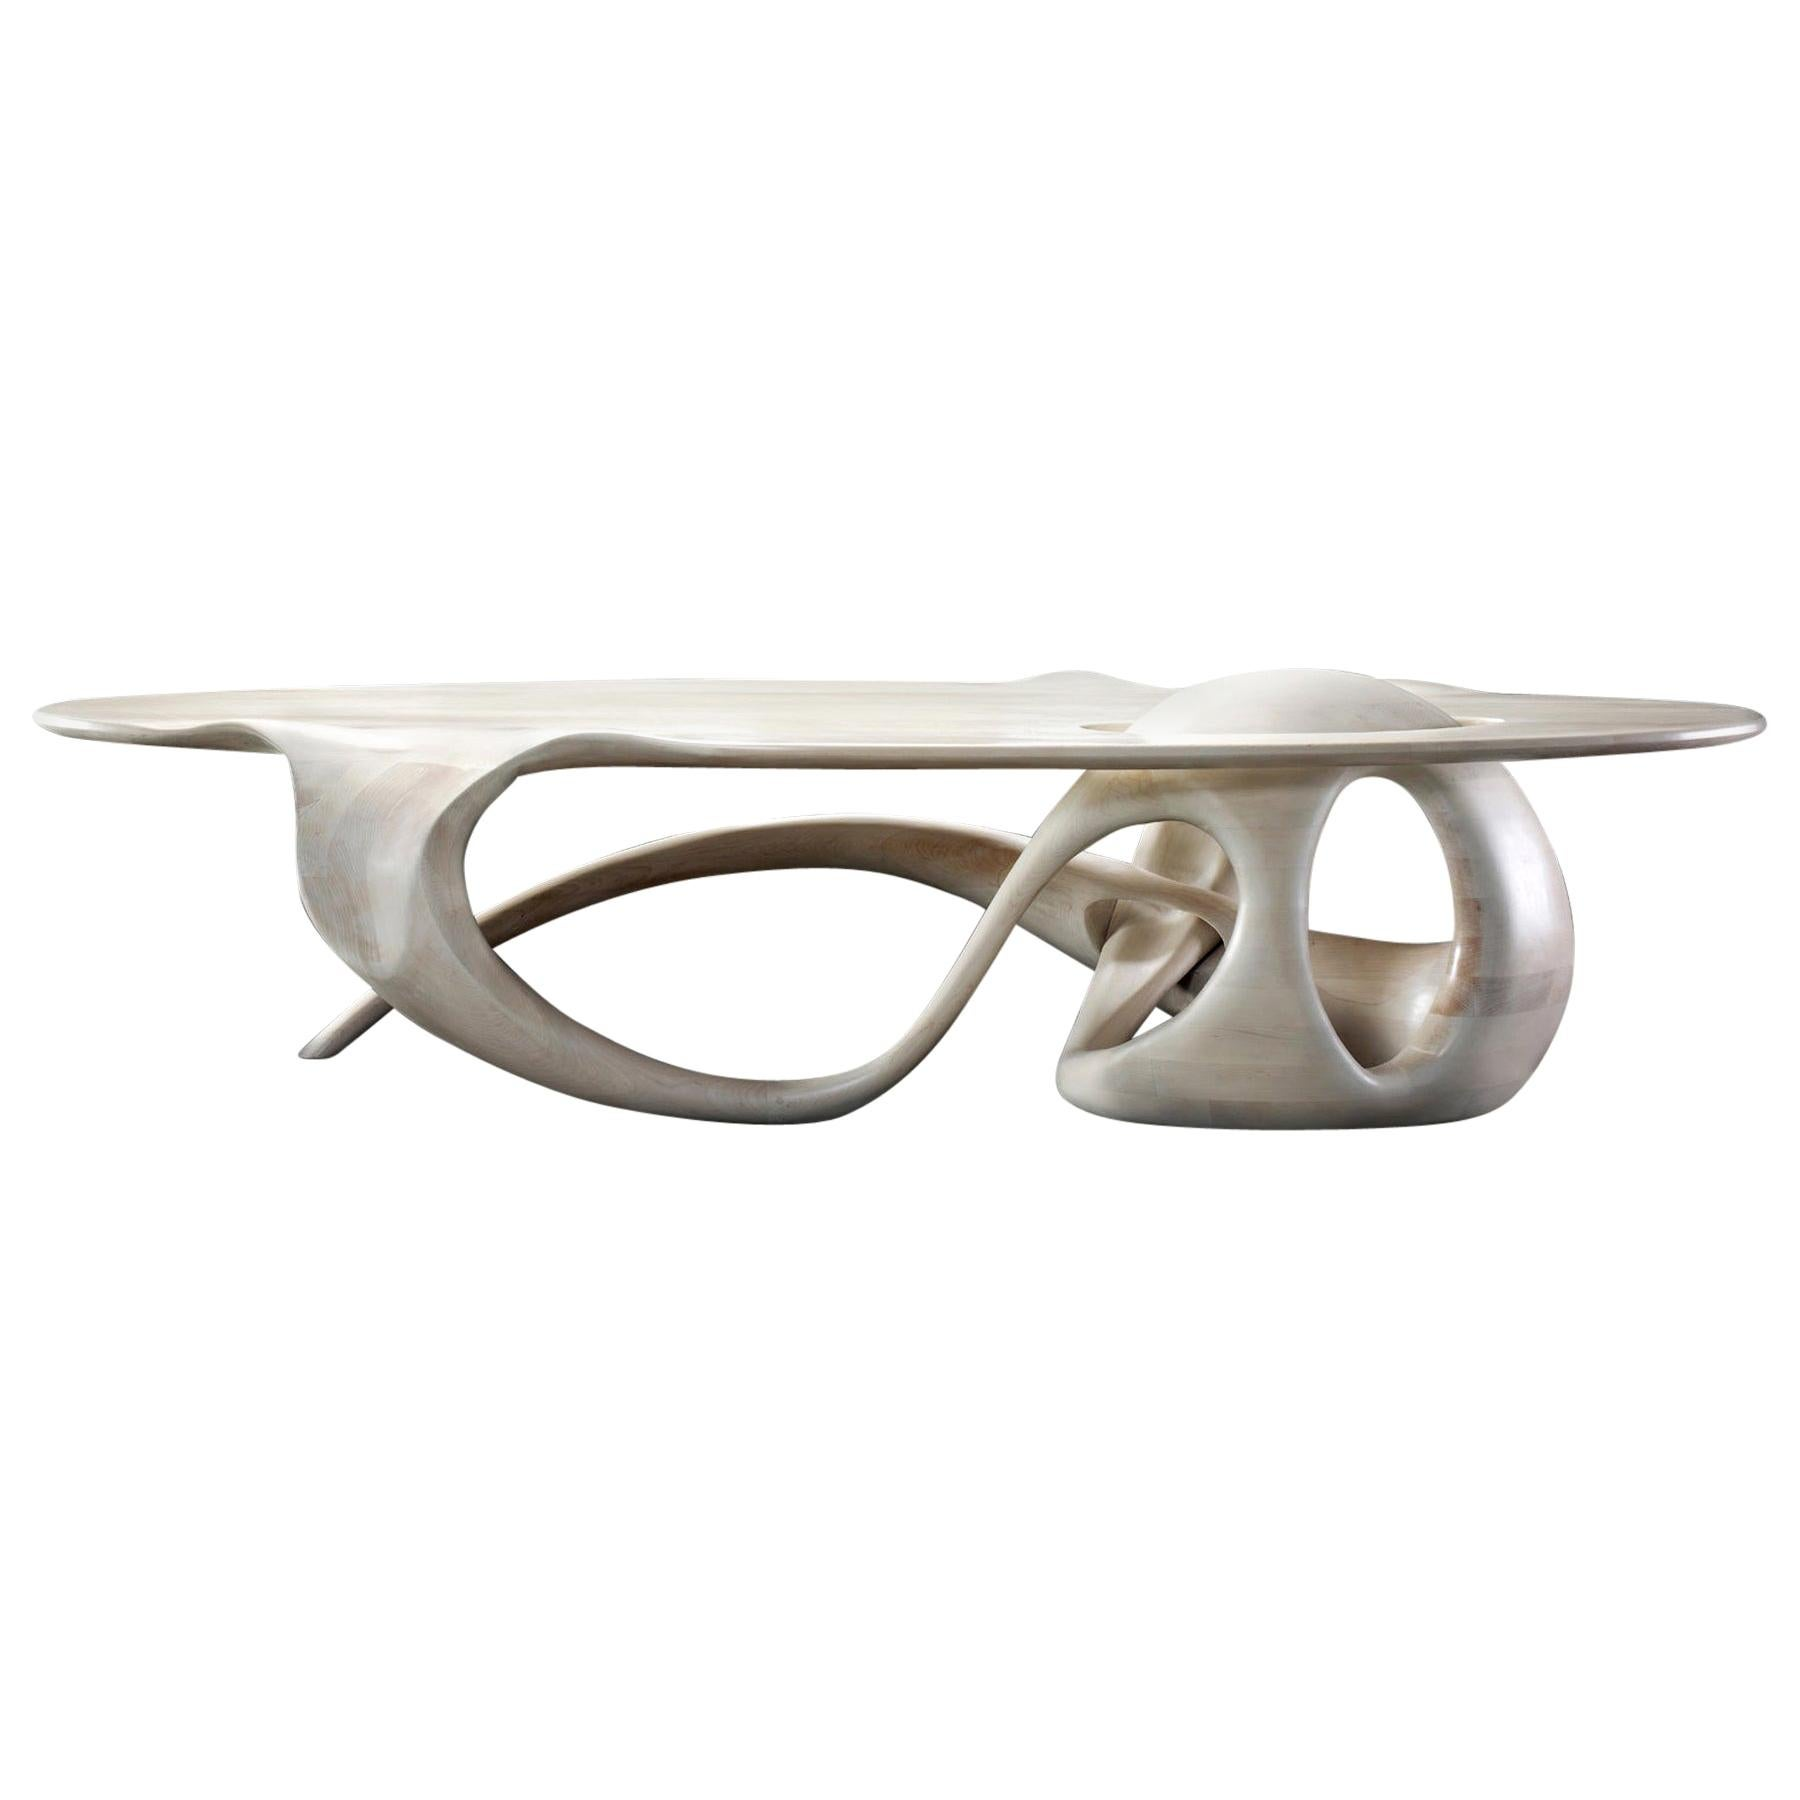 Sculpted Maple Coffee Table Signed by Gildas Berthelot